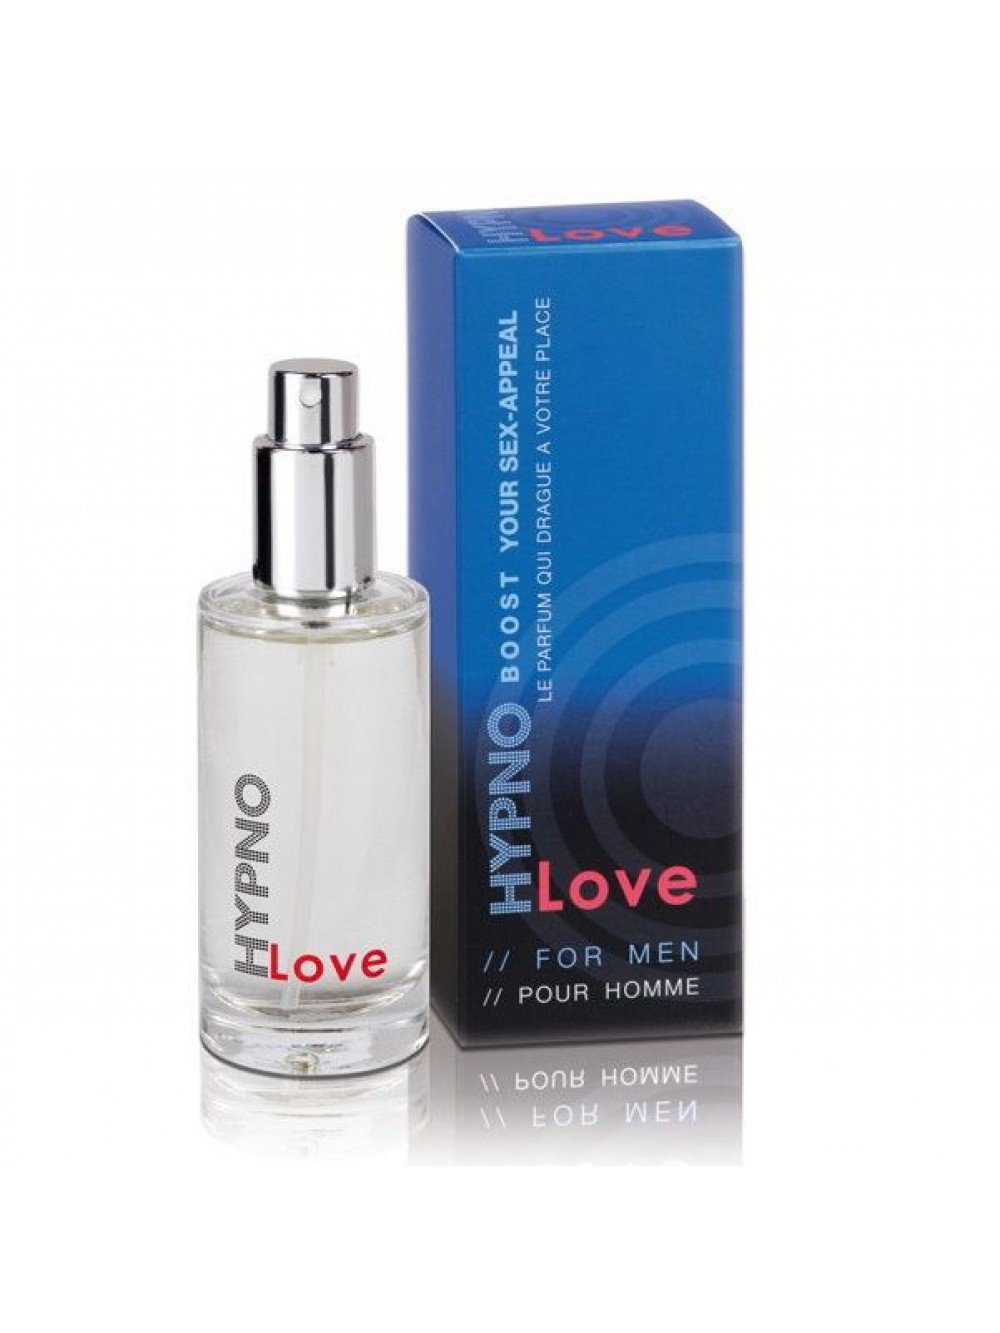 HYPNO LOVE BOOST YOUR SEX APPEAL FOR MEN 3548960020210